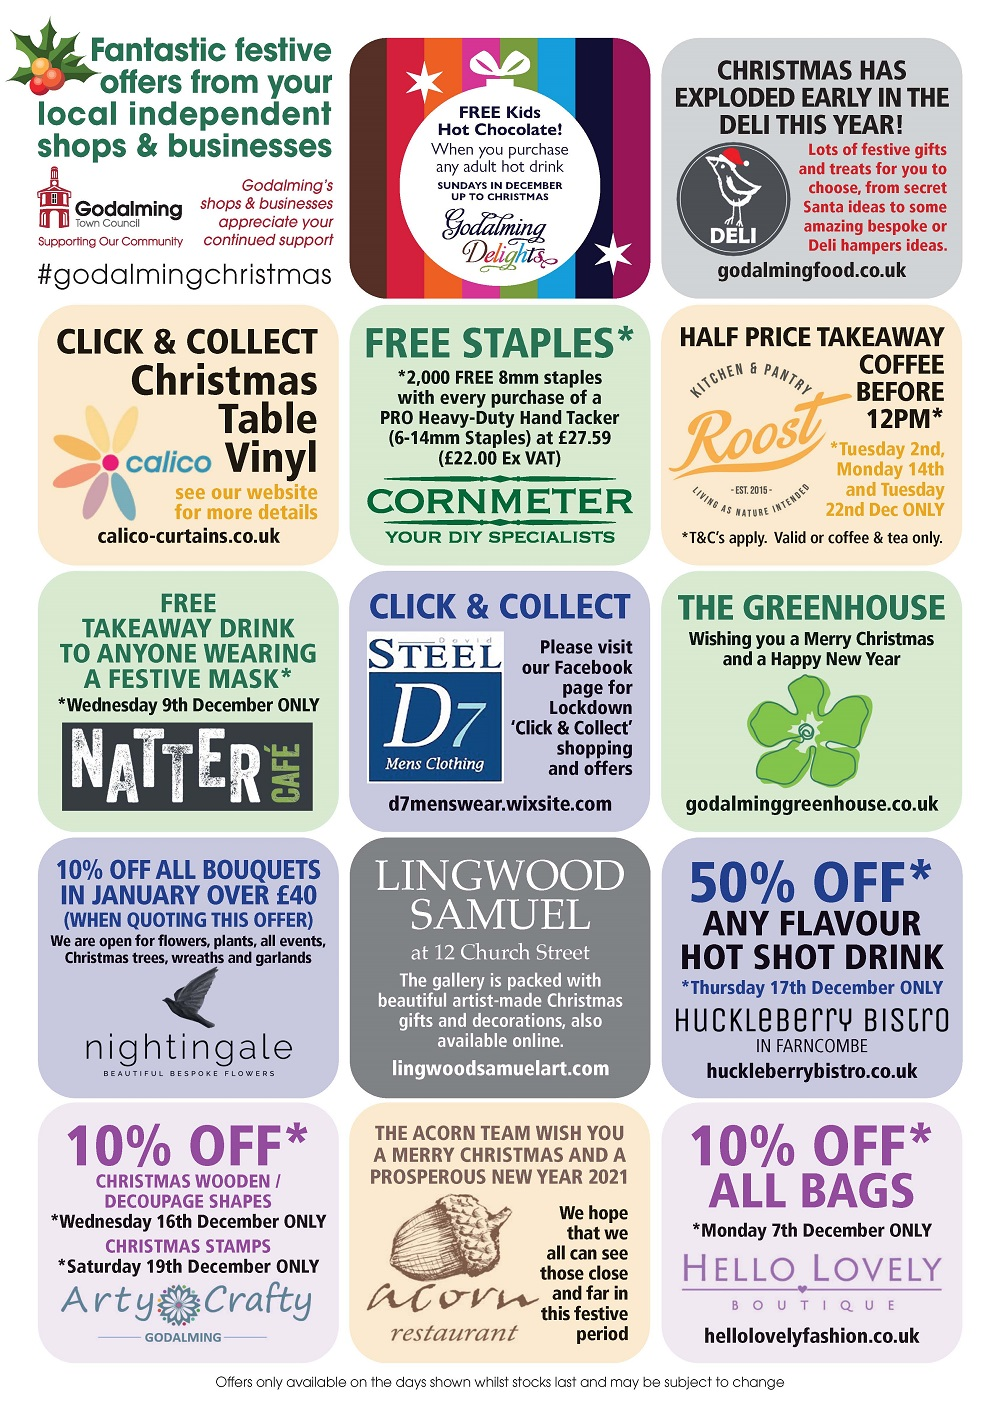 Fantastic festive offers from your local independent shops and businesses